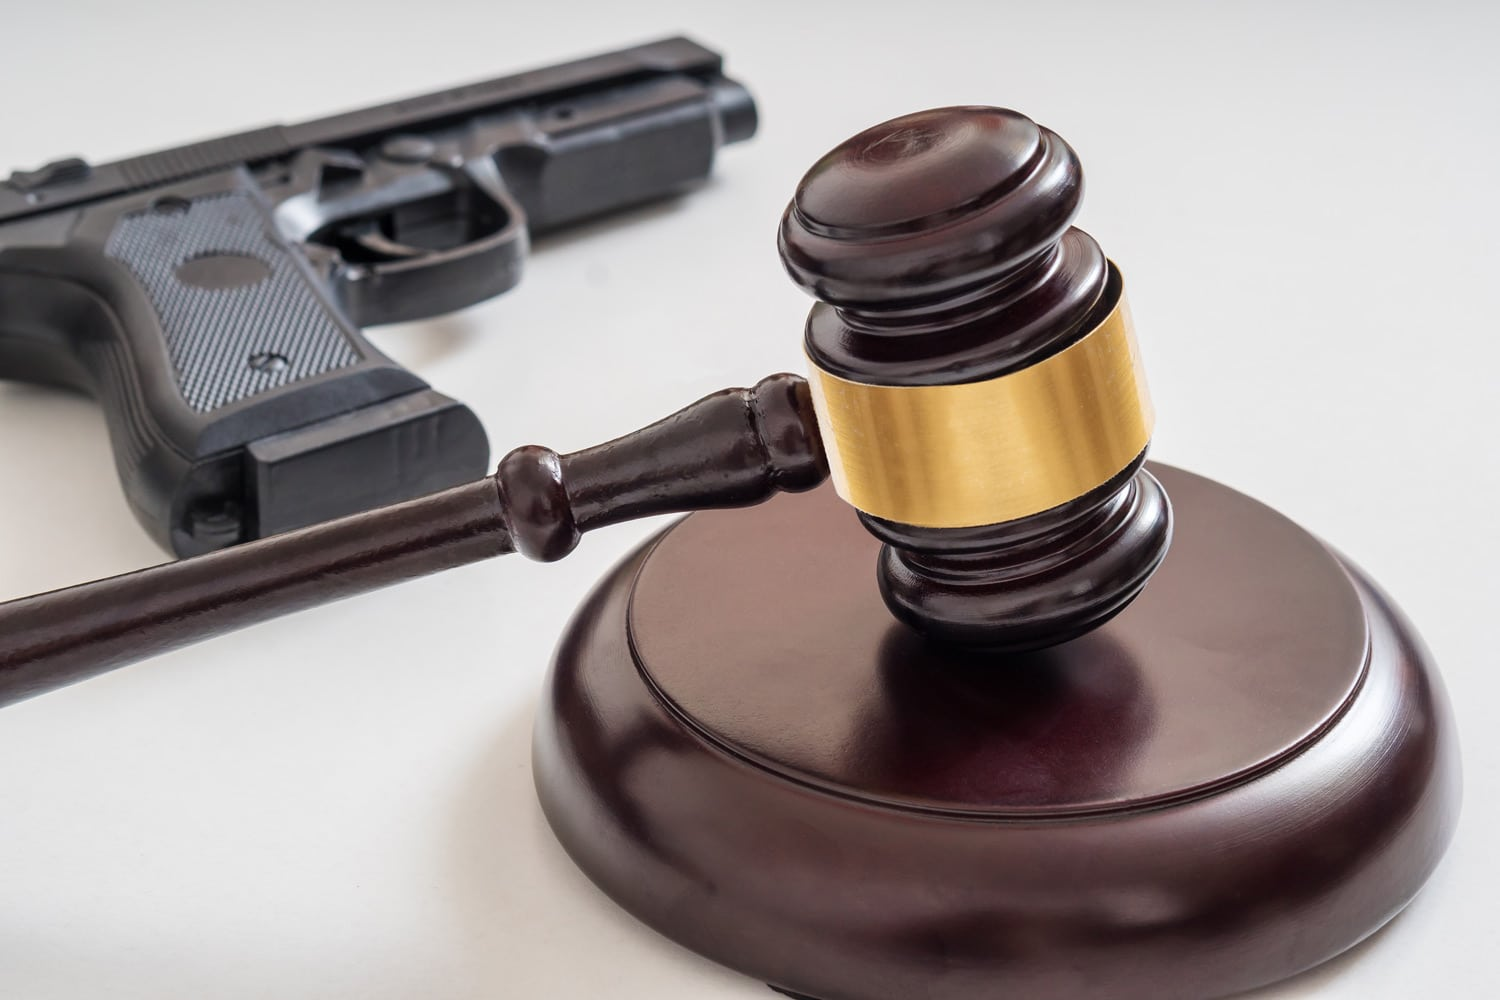 DWI and Gun Rights. A DWI can complicate matters, and in some situations can even affect your right to own a firearm. Learn what options you have.